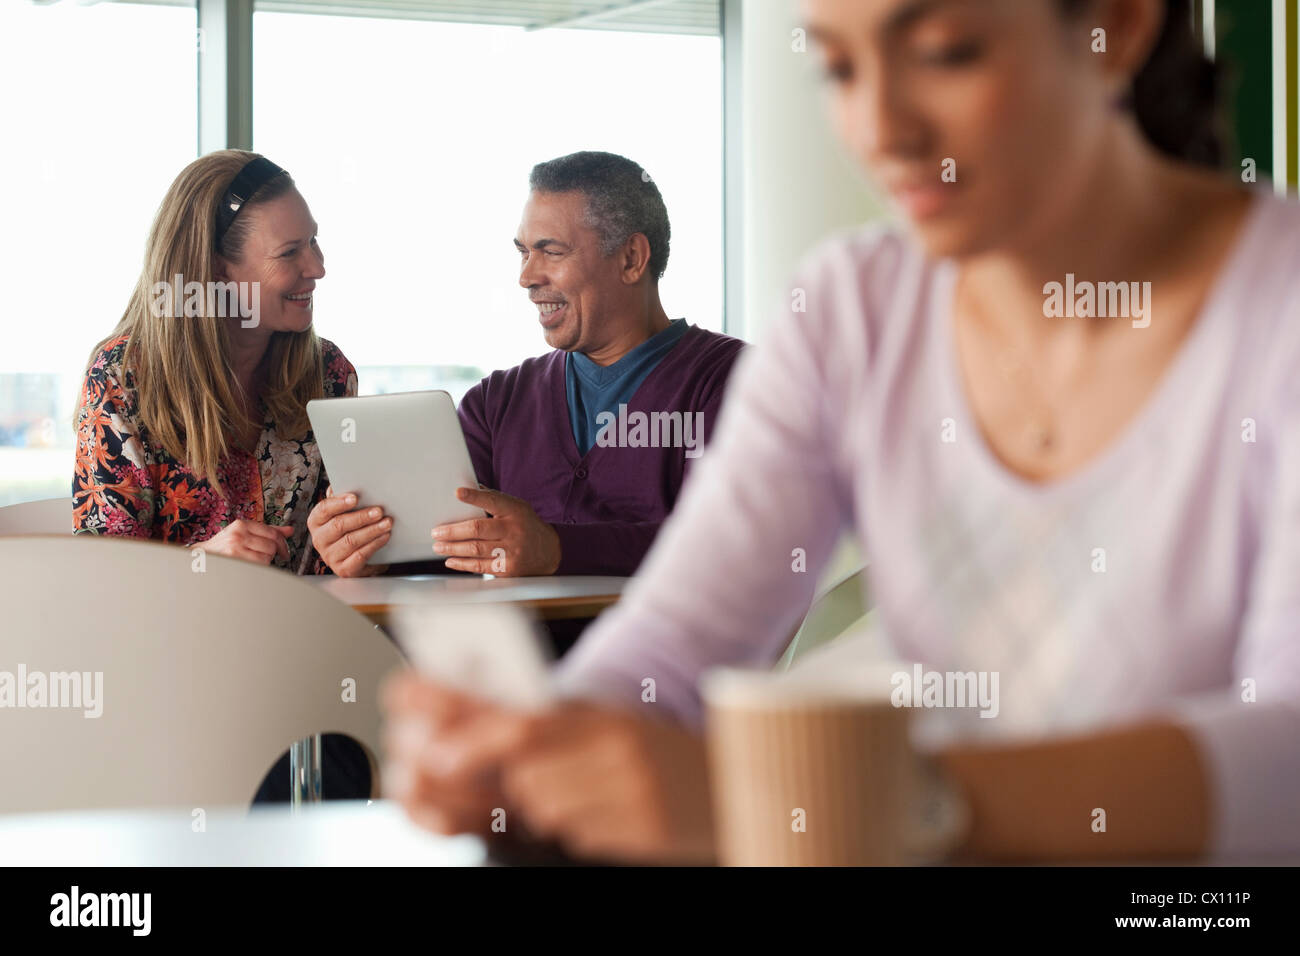 Man using digital tablet, woman texting in foreground - Stock Image